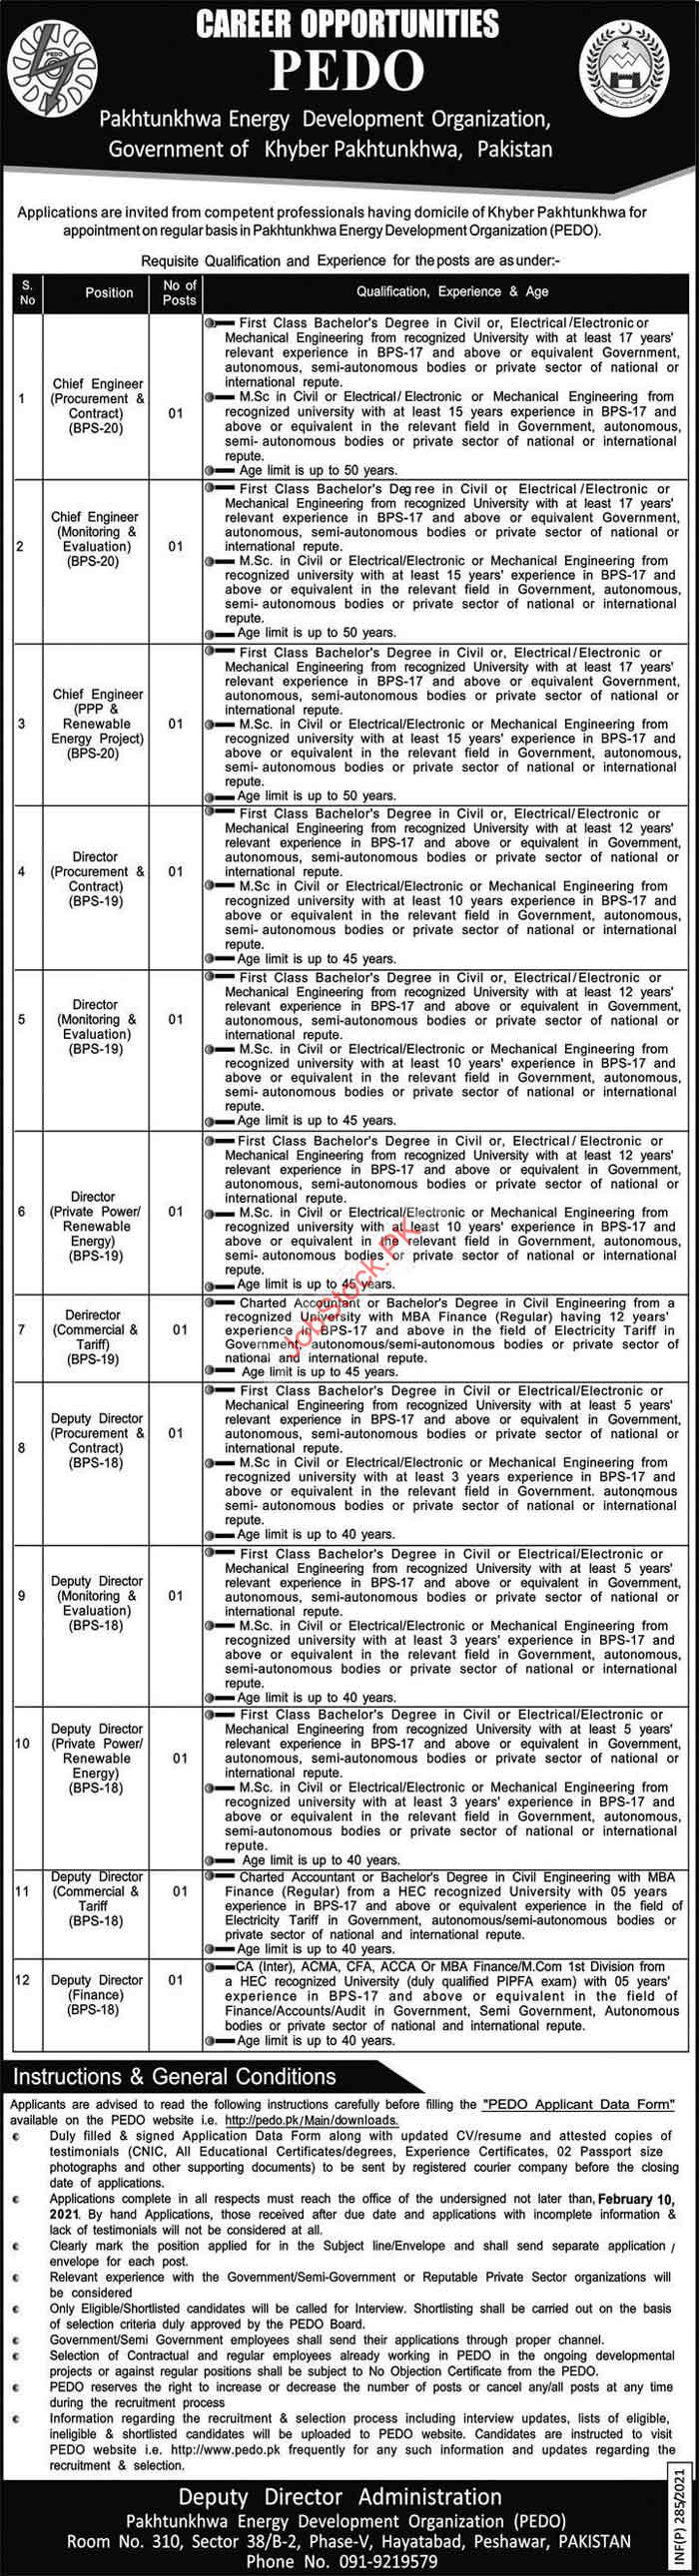 Engineer Jobs In Pakhtunkhwa Energy Development Organization Pedo